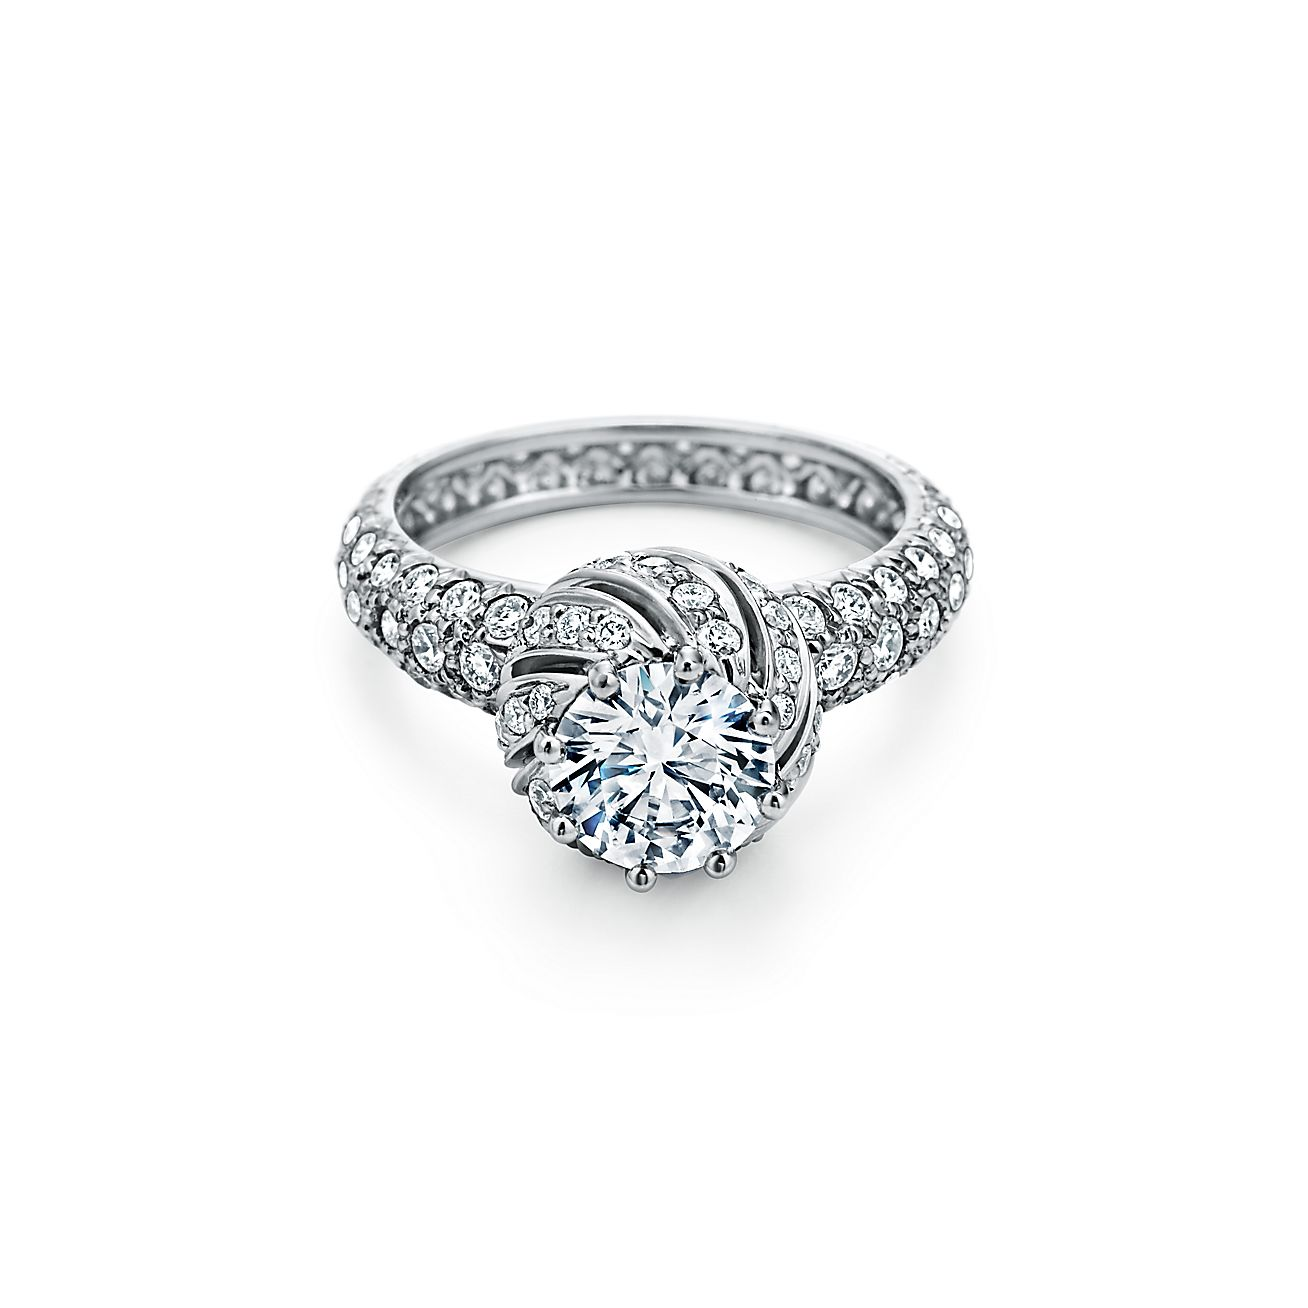 Buds Round Brilliant Engagement Ring with a Diamond Platinum Band.